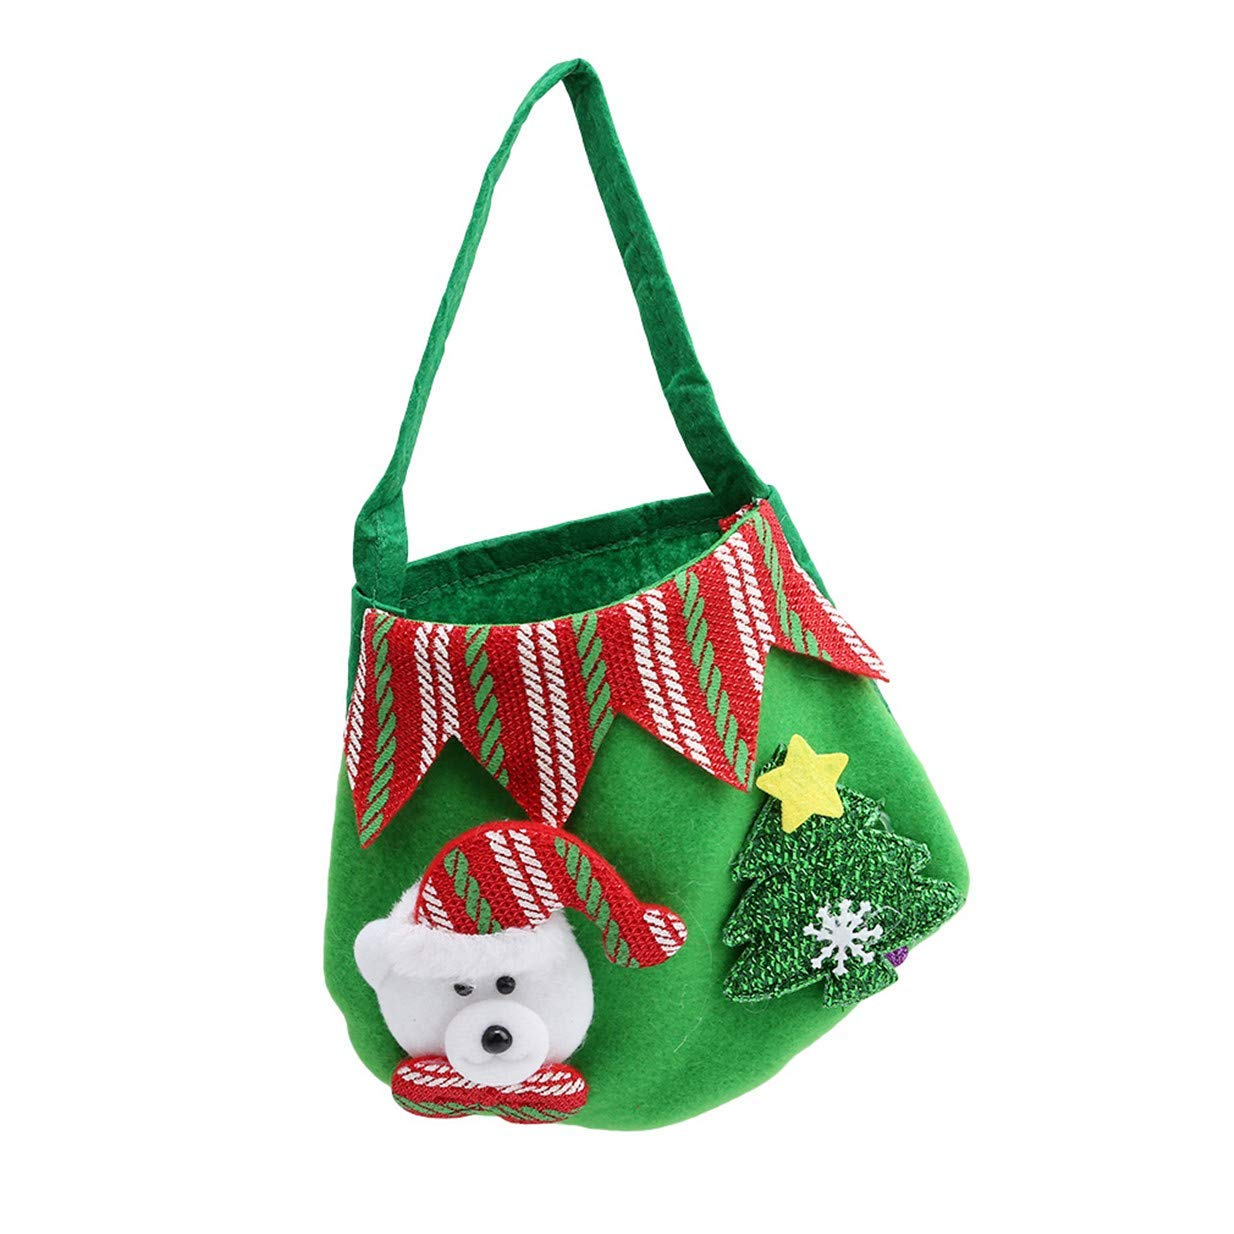 Tcplyn Premium Creative Christmas Apple Sweets Gift Bags New Year Home DecorationsGreen Bear